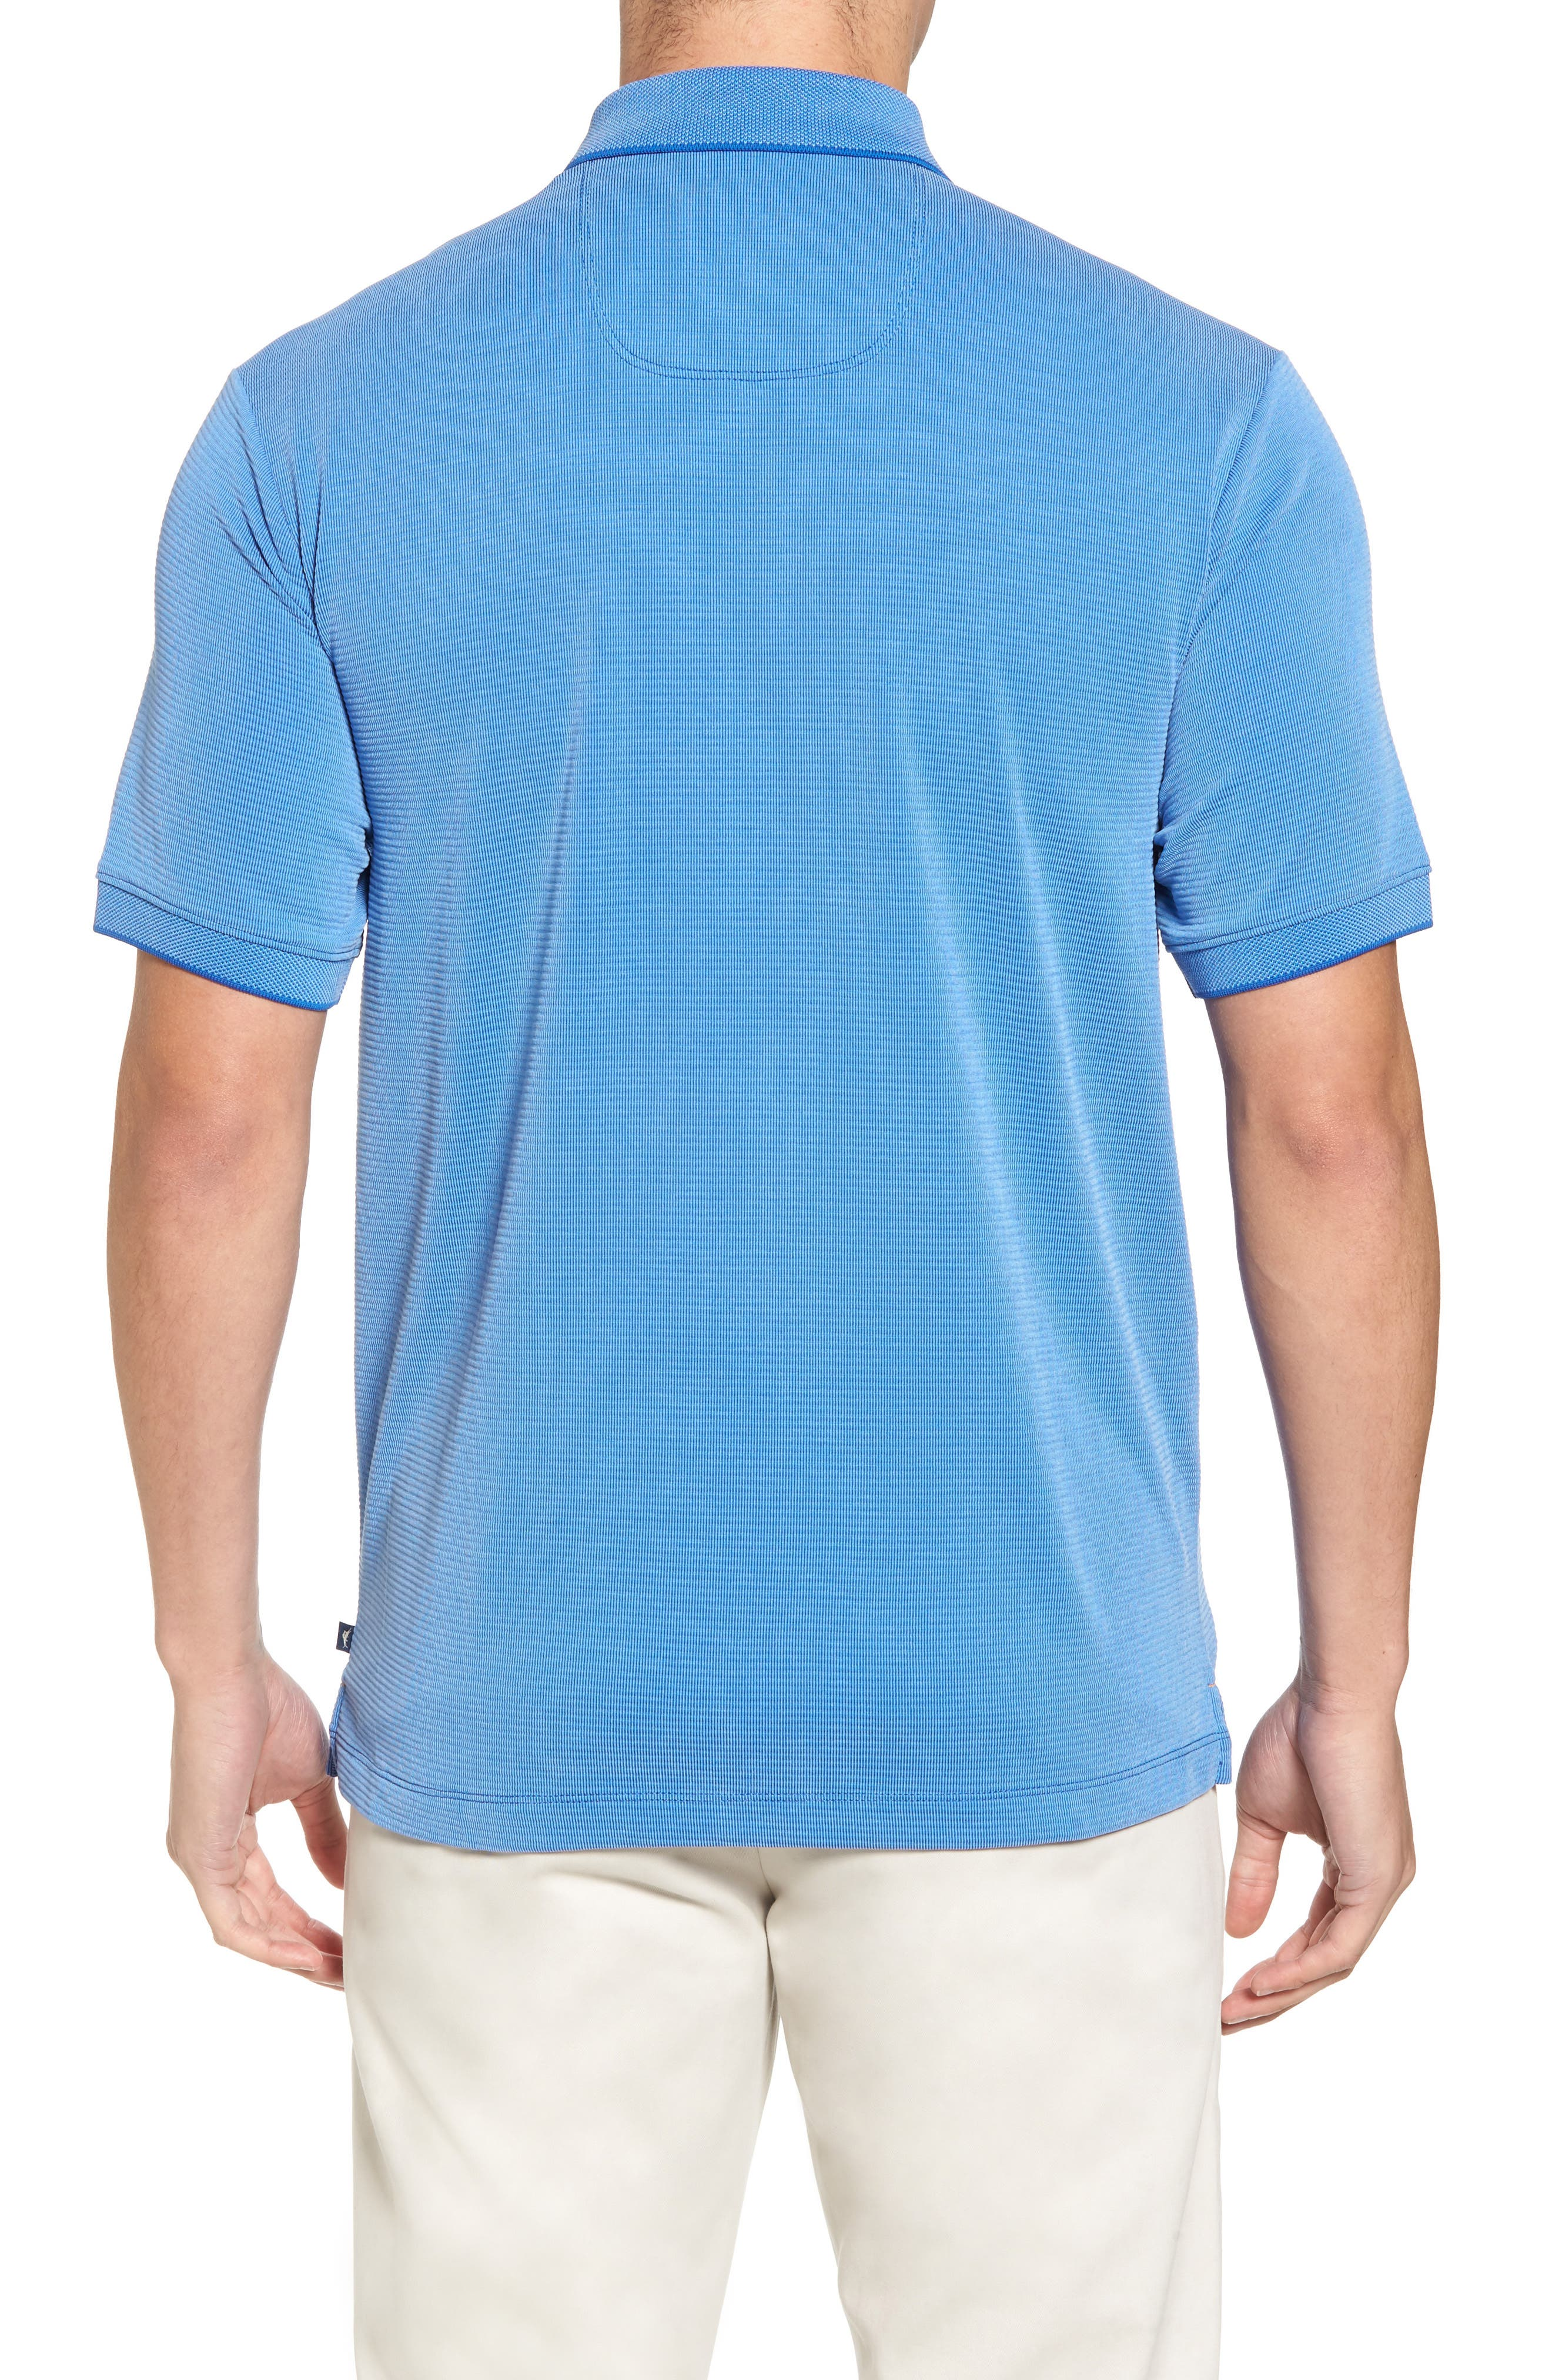 Alternate Image 2  - Tommy Bahama Coastal Crest Polo